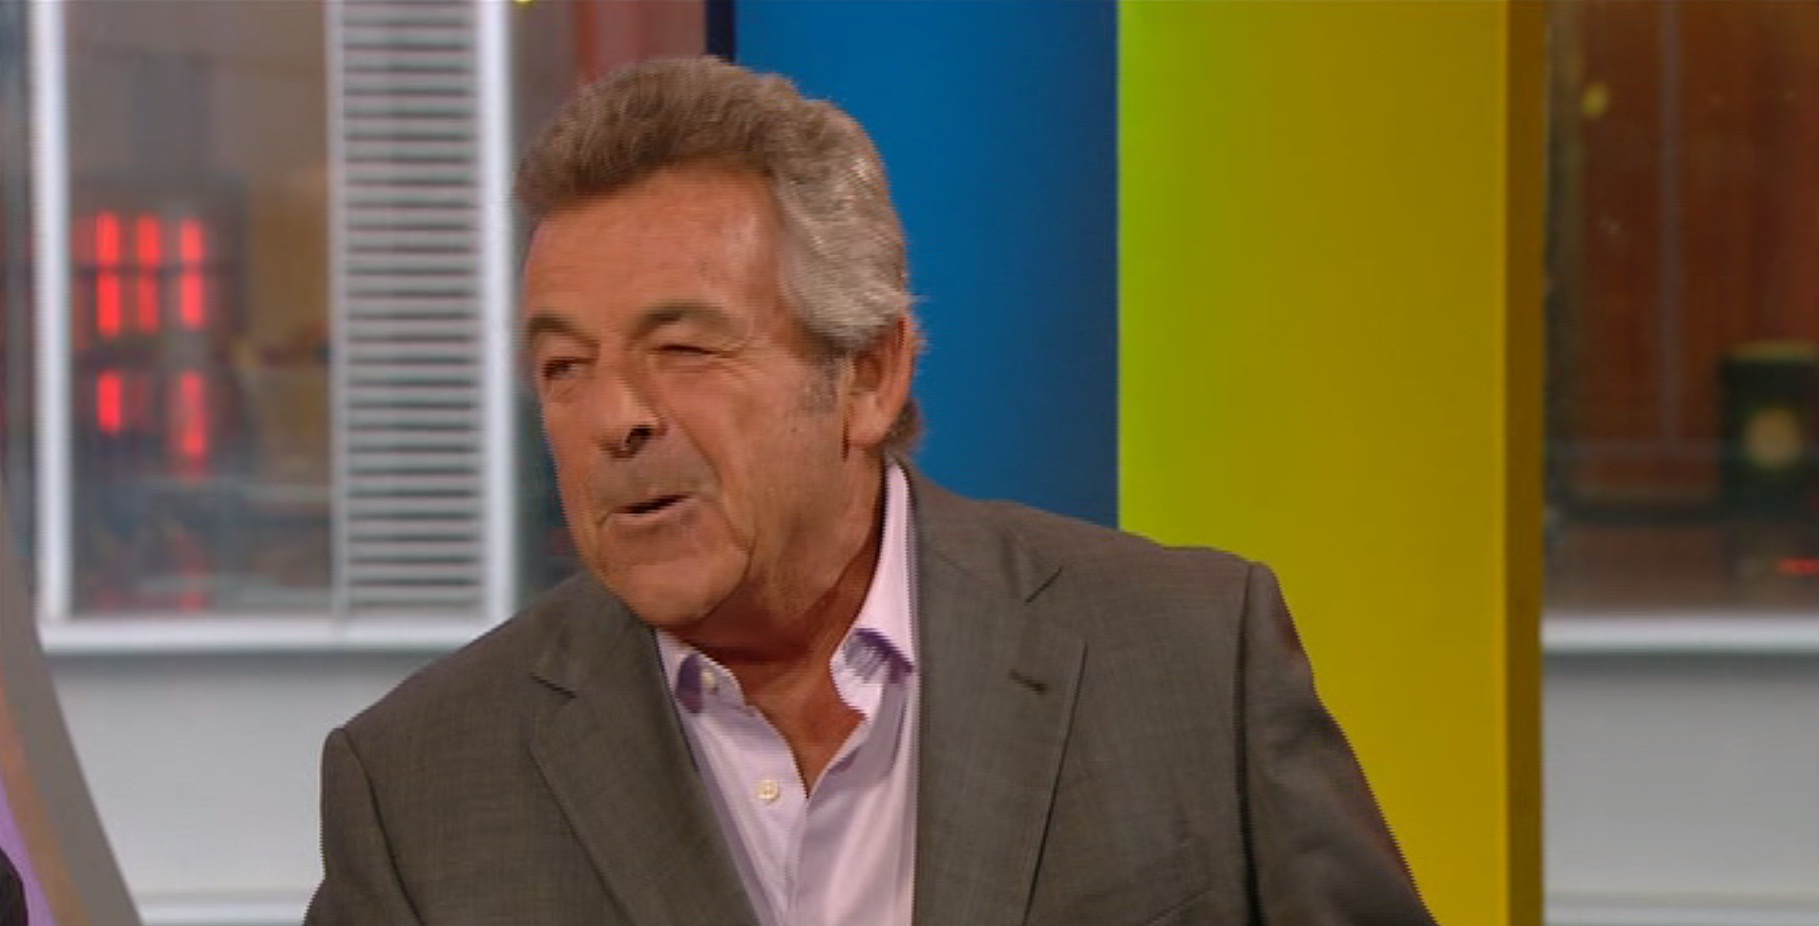 Tony Jacklin has been confirmed for this year's Strictly Come Dancing (Picture: BBC One)